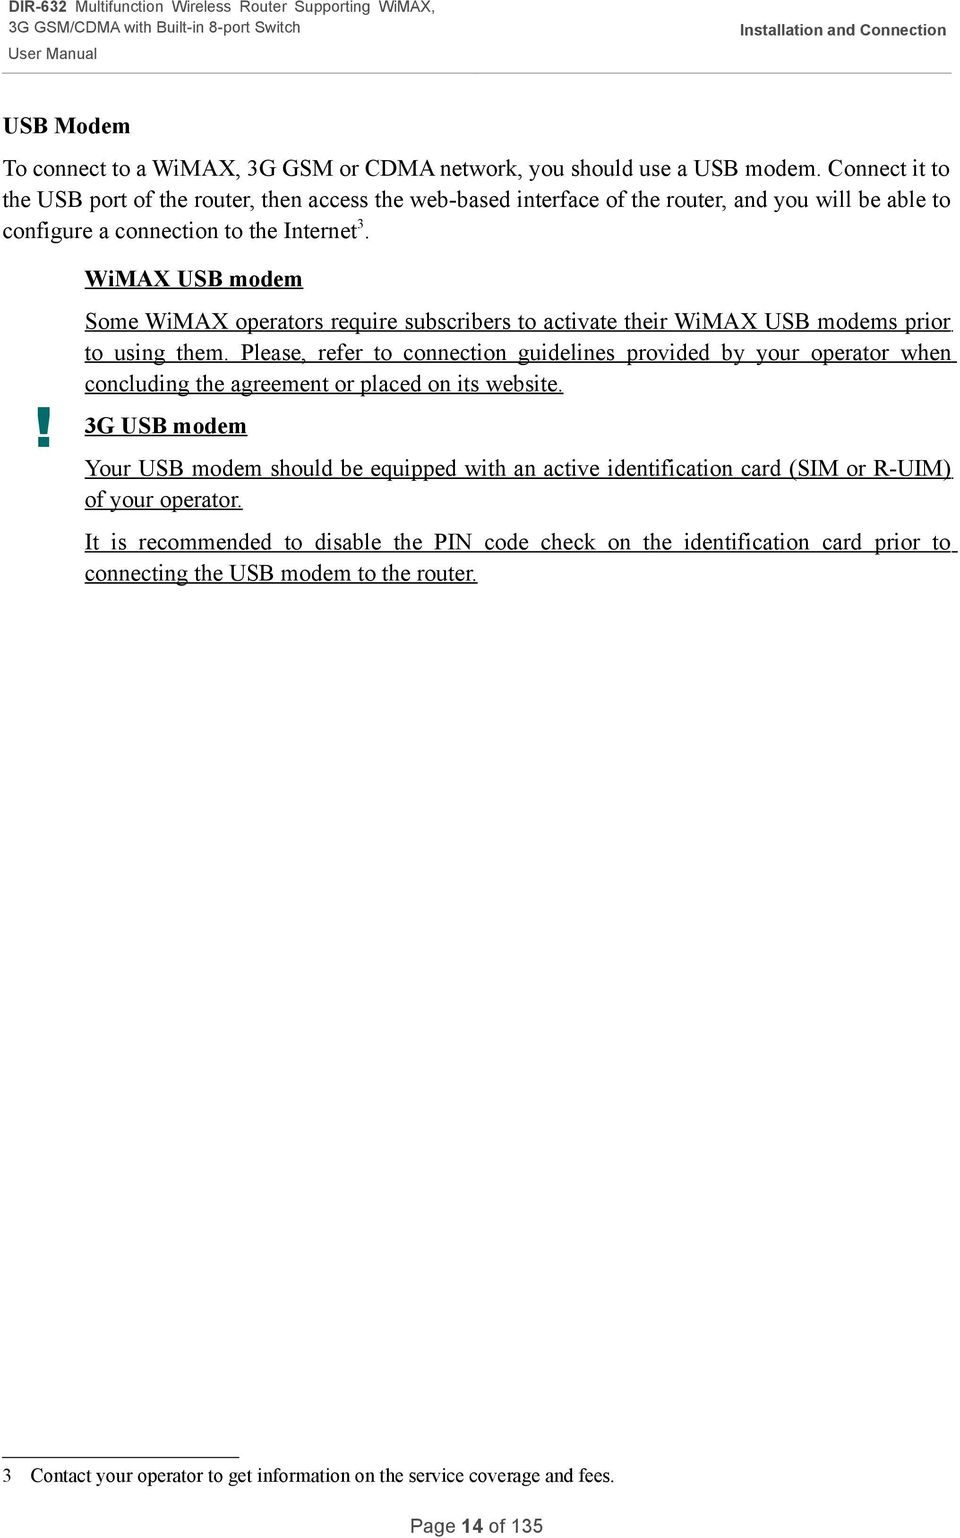 Some WiMAX operators require subscribers to activate their WiMAX USB modems prior to using them.